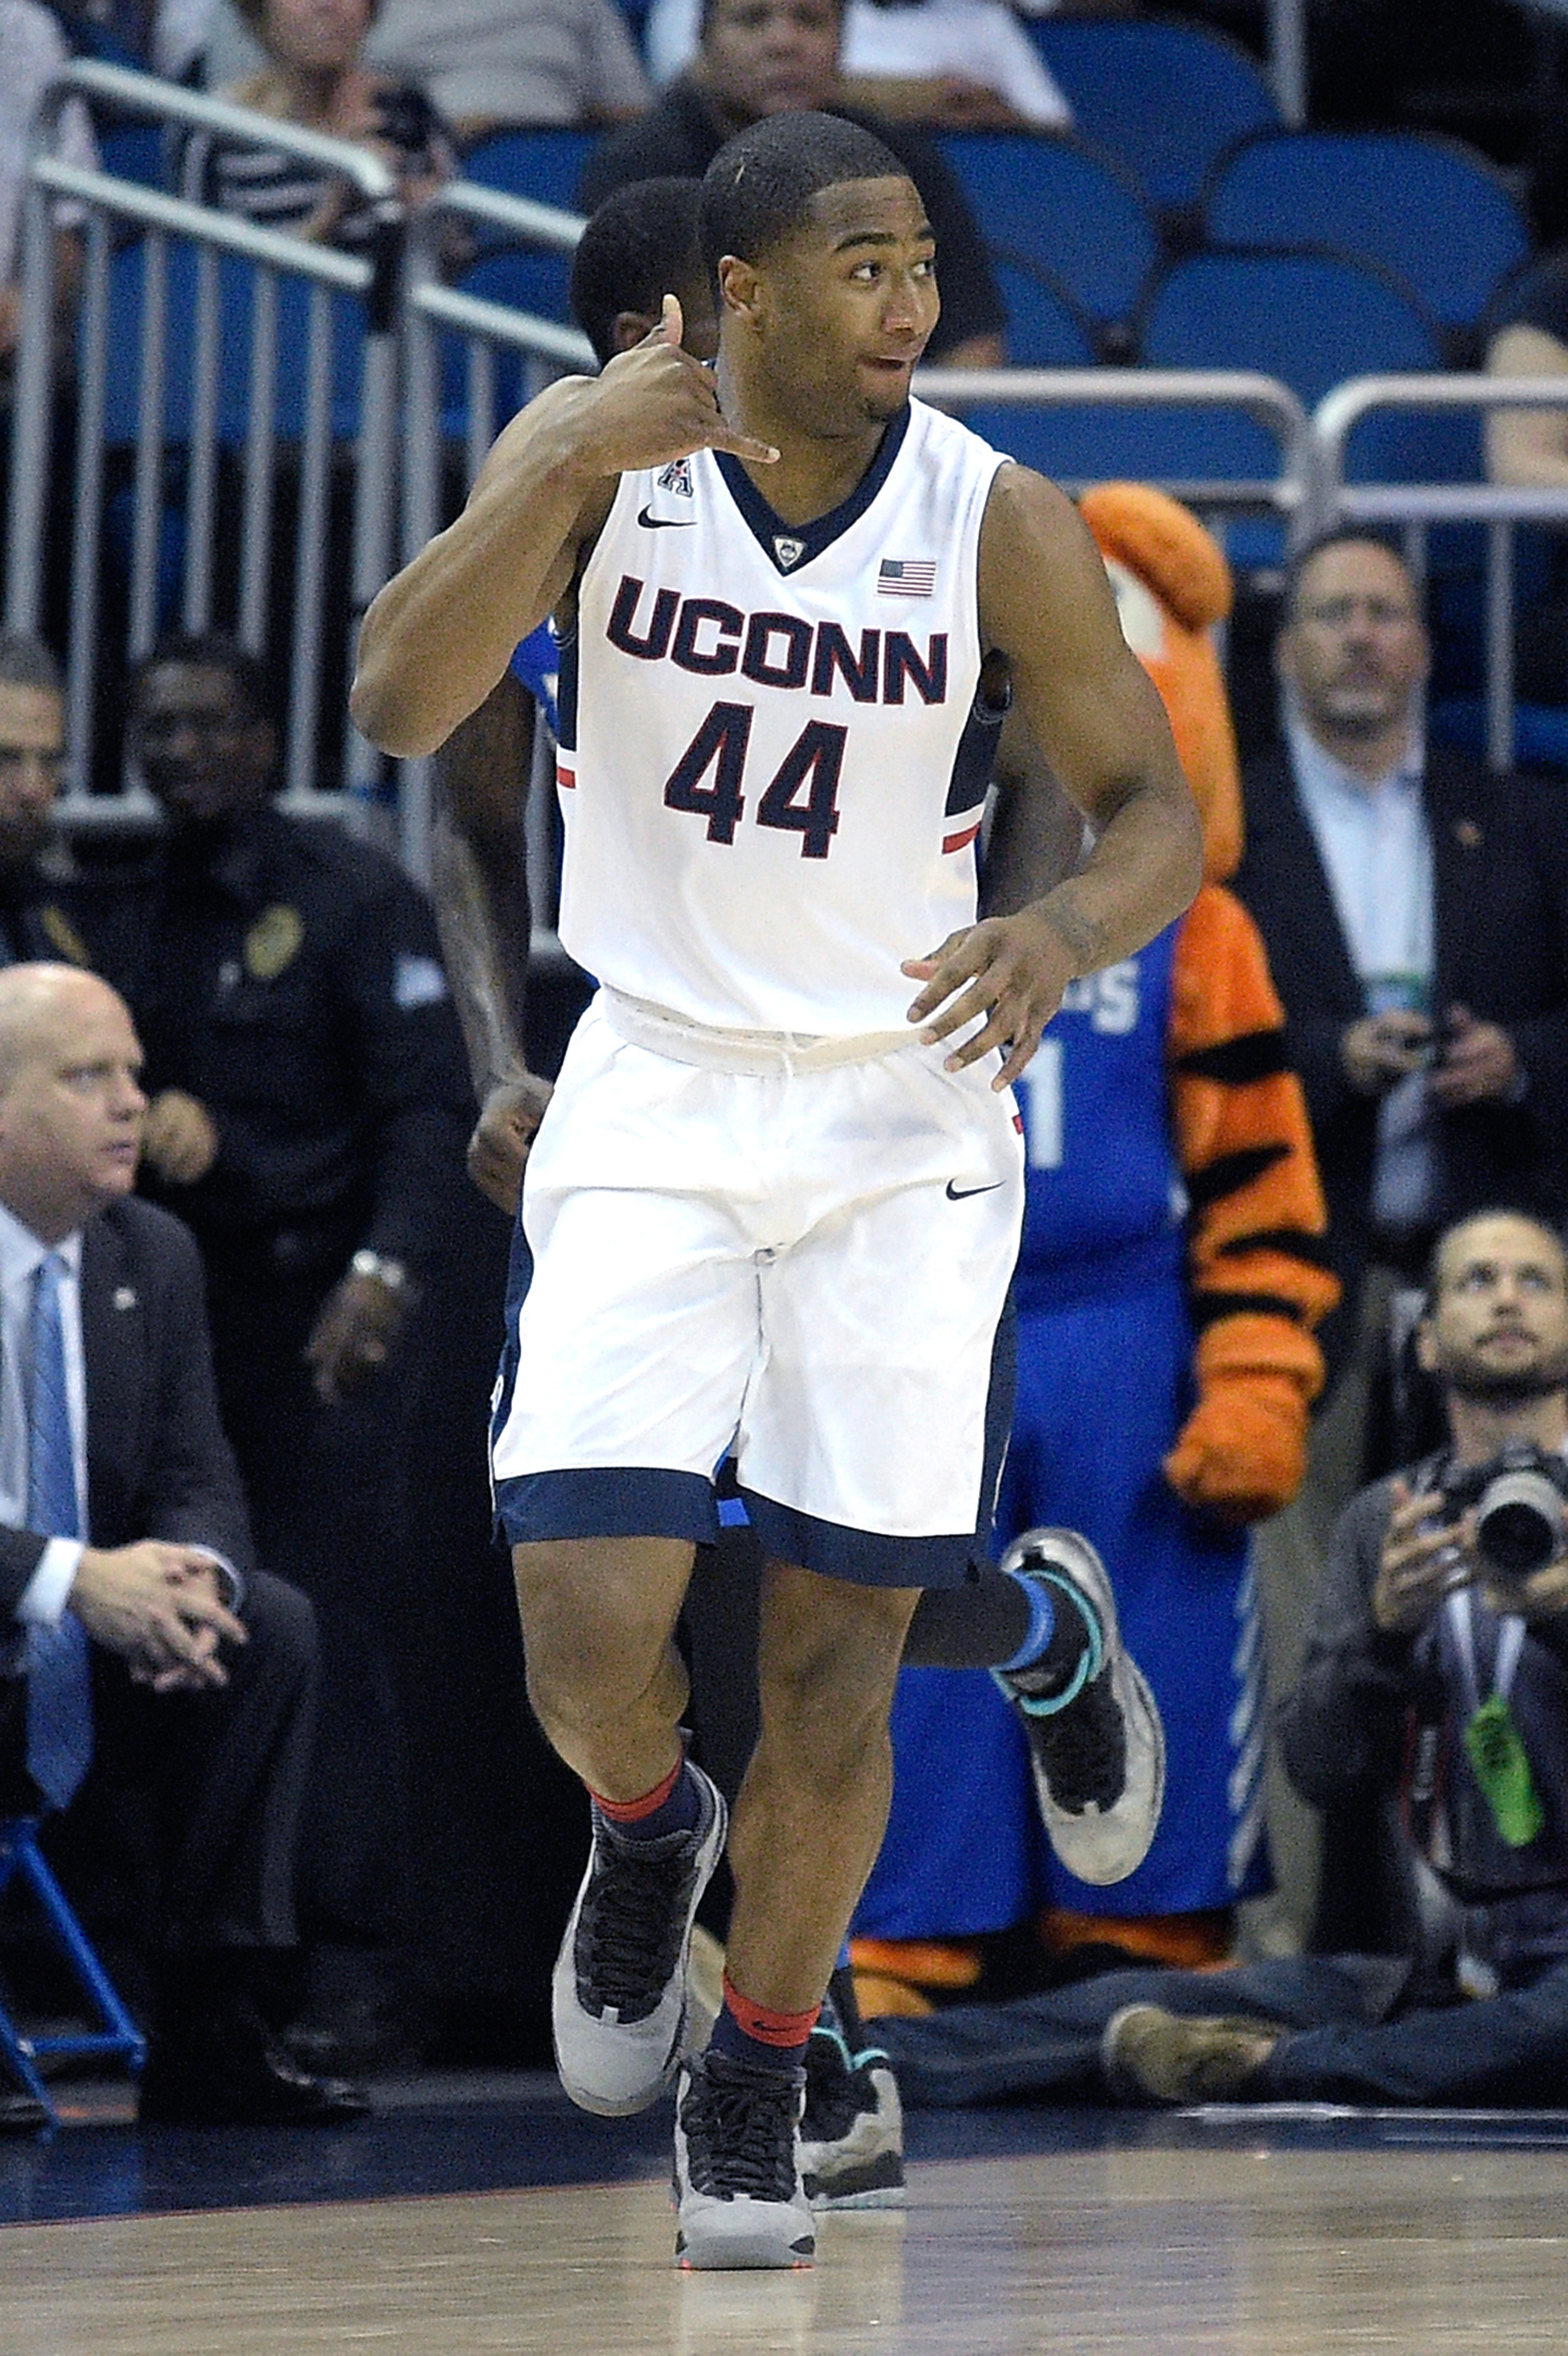 Connecticut guard Rodney Purvis (44) celebrates after scoring a three-pointer during the first half of an NCAA college basketball game against Memphis in the finals of the American Athletic Conference men's tournament in Orlando, Fla., Sunday, March 13, 2